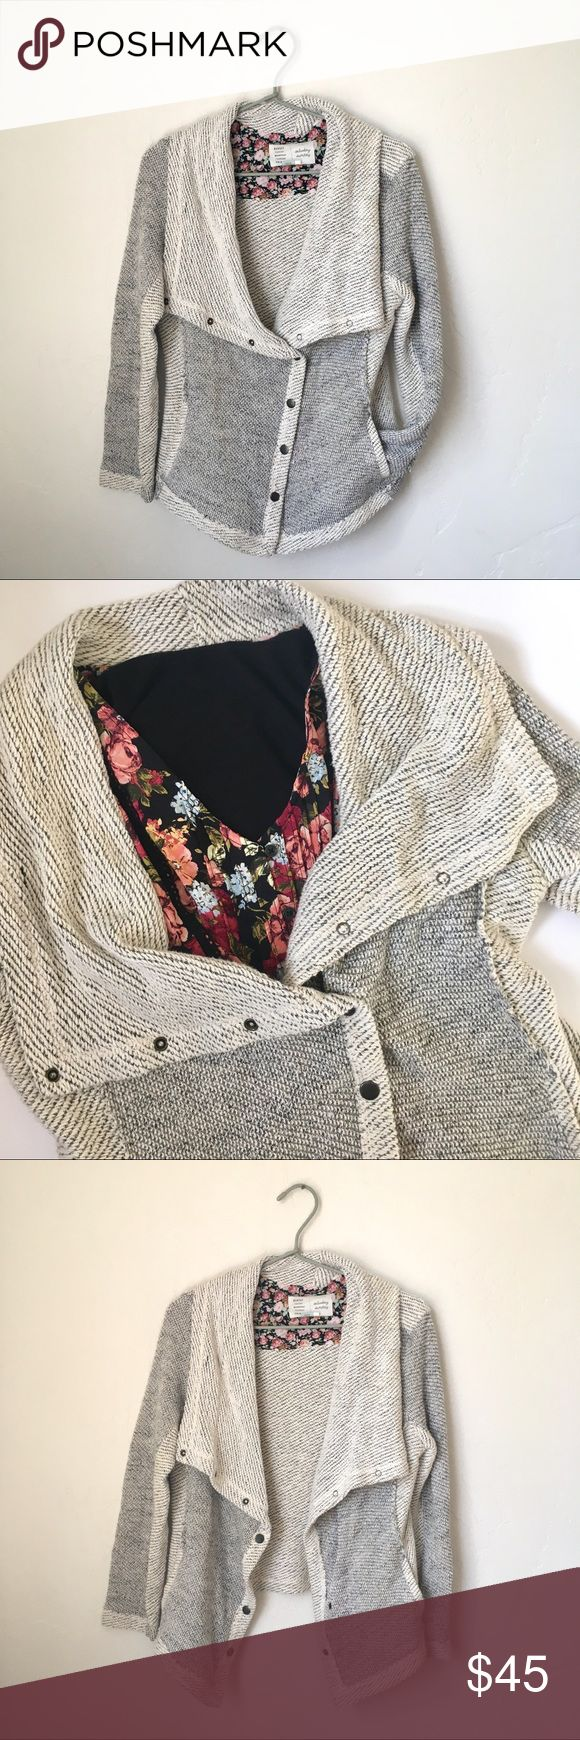 Saturday Sunday/Anthro - Knit Cardigan This cardigan is perfect for Fall weather! It's in good used condition with minor pilling and very slight discoloration (pictured above) Says size medium, but could fit a small as well!  priced with condition in mind. Anthropologie Sweaters Cardigans